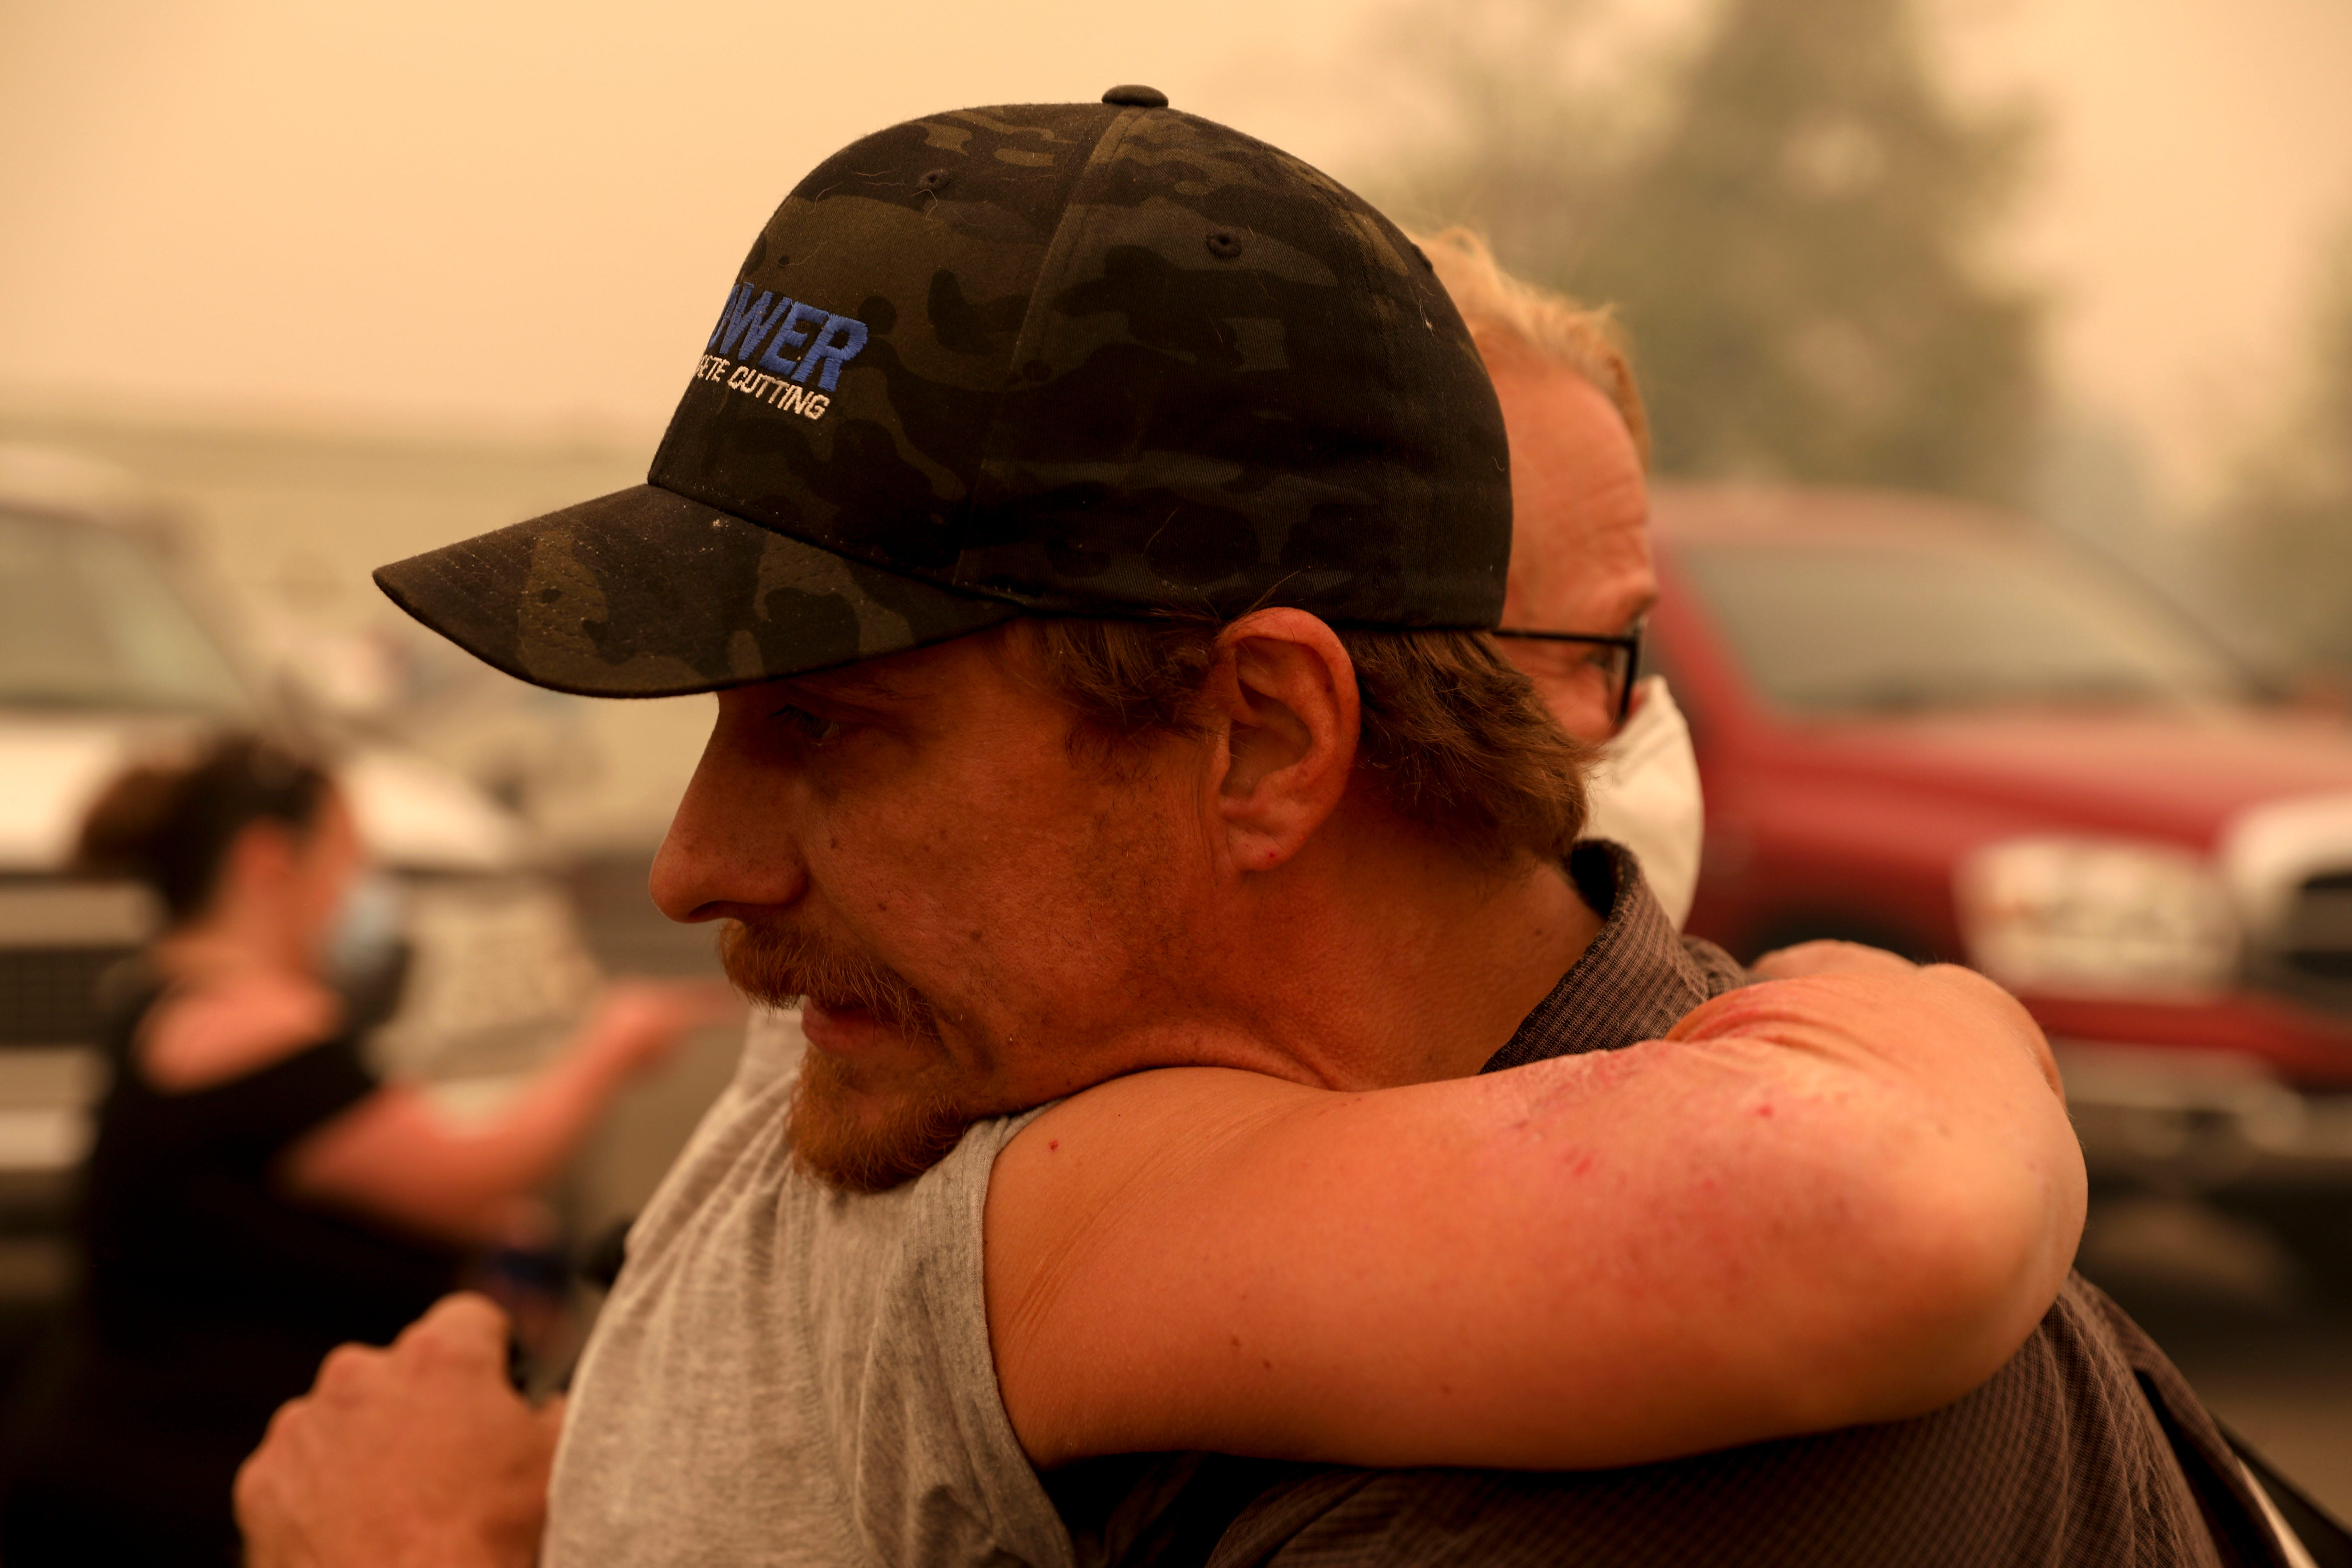 Chris Tofte hugs a friend before a group leaves to search for his son Wyatt Tofte, 13, and his dog Duke in Stayton, Oregon on Wednesday, Sept. 9, 2020.